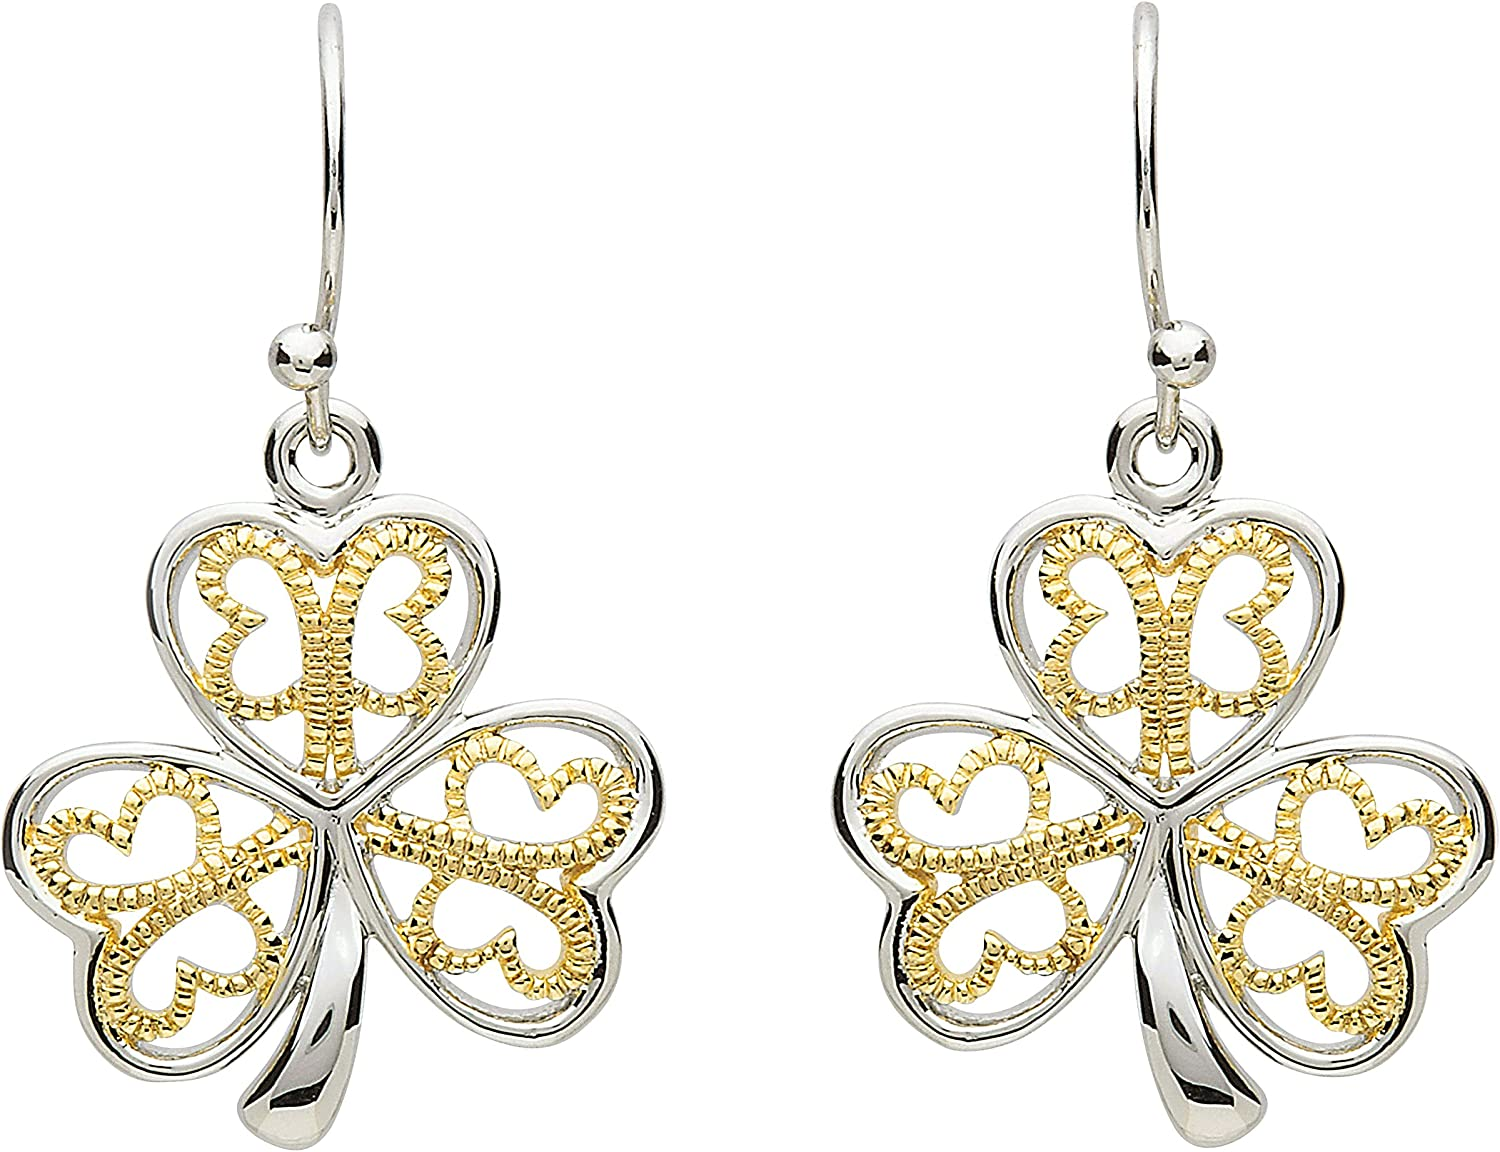 Shanore Max 42% OFF Platinum Animer and price revision Plated Shamrock Earring